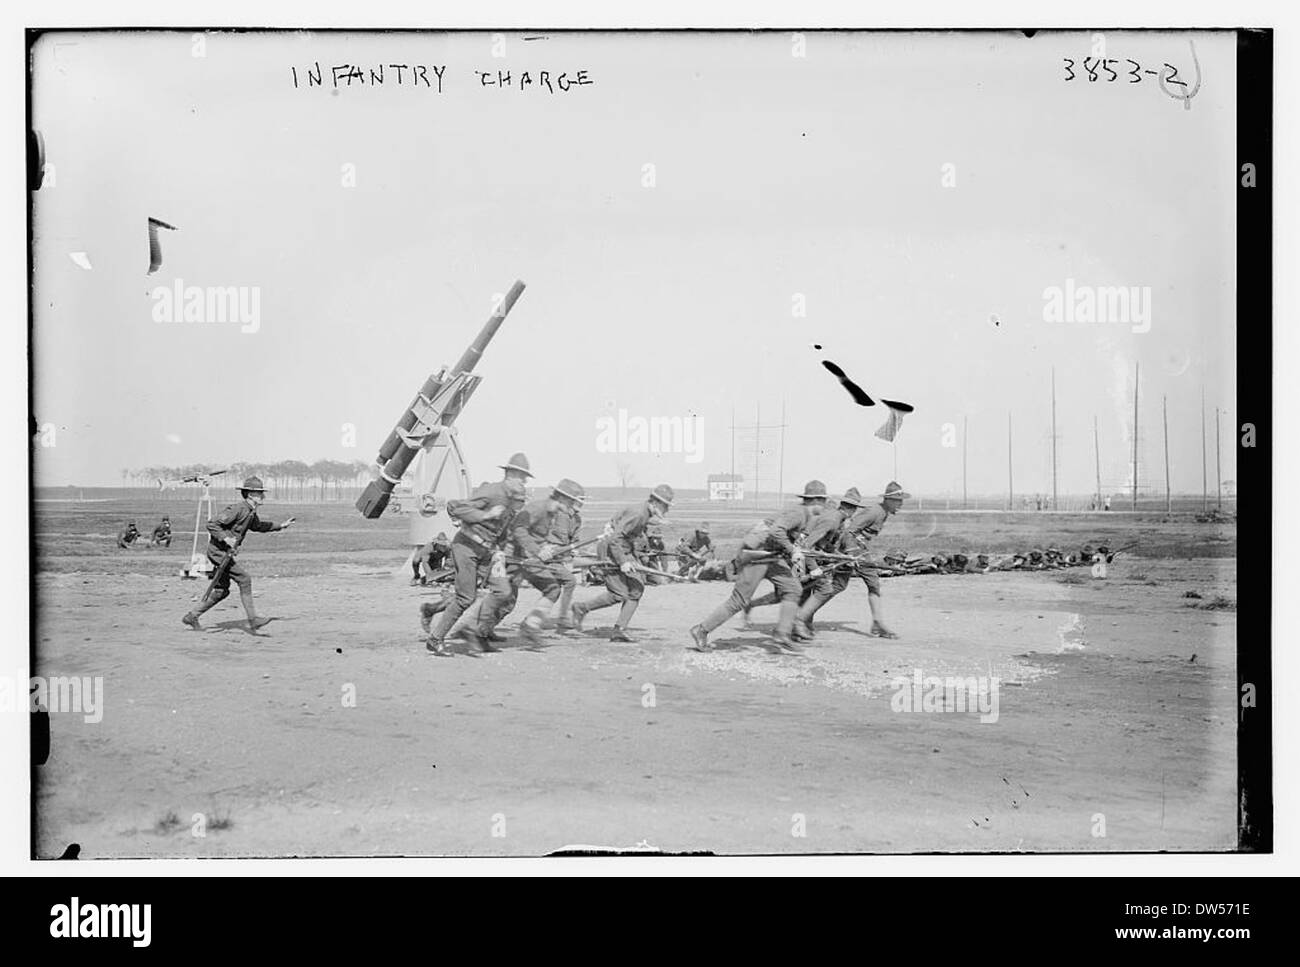 Infantry Charge (LOC) - Stock Image